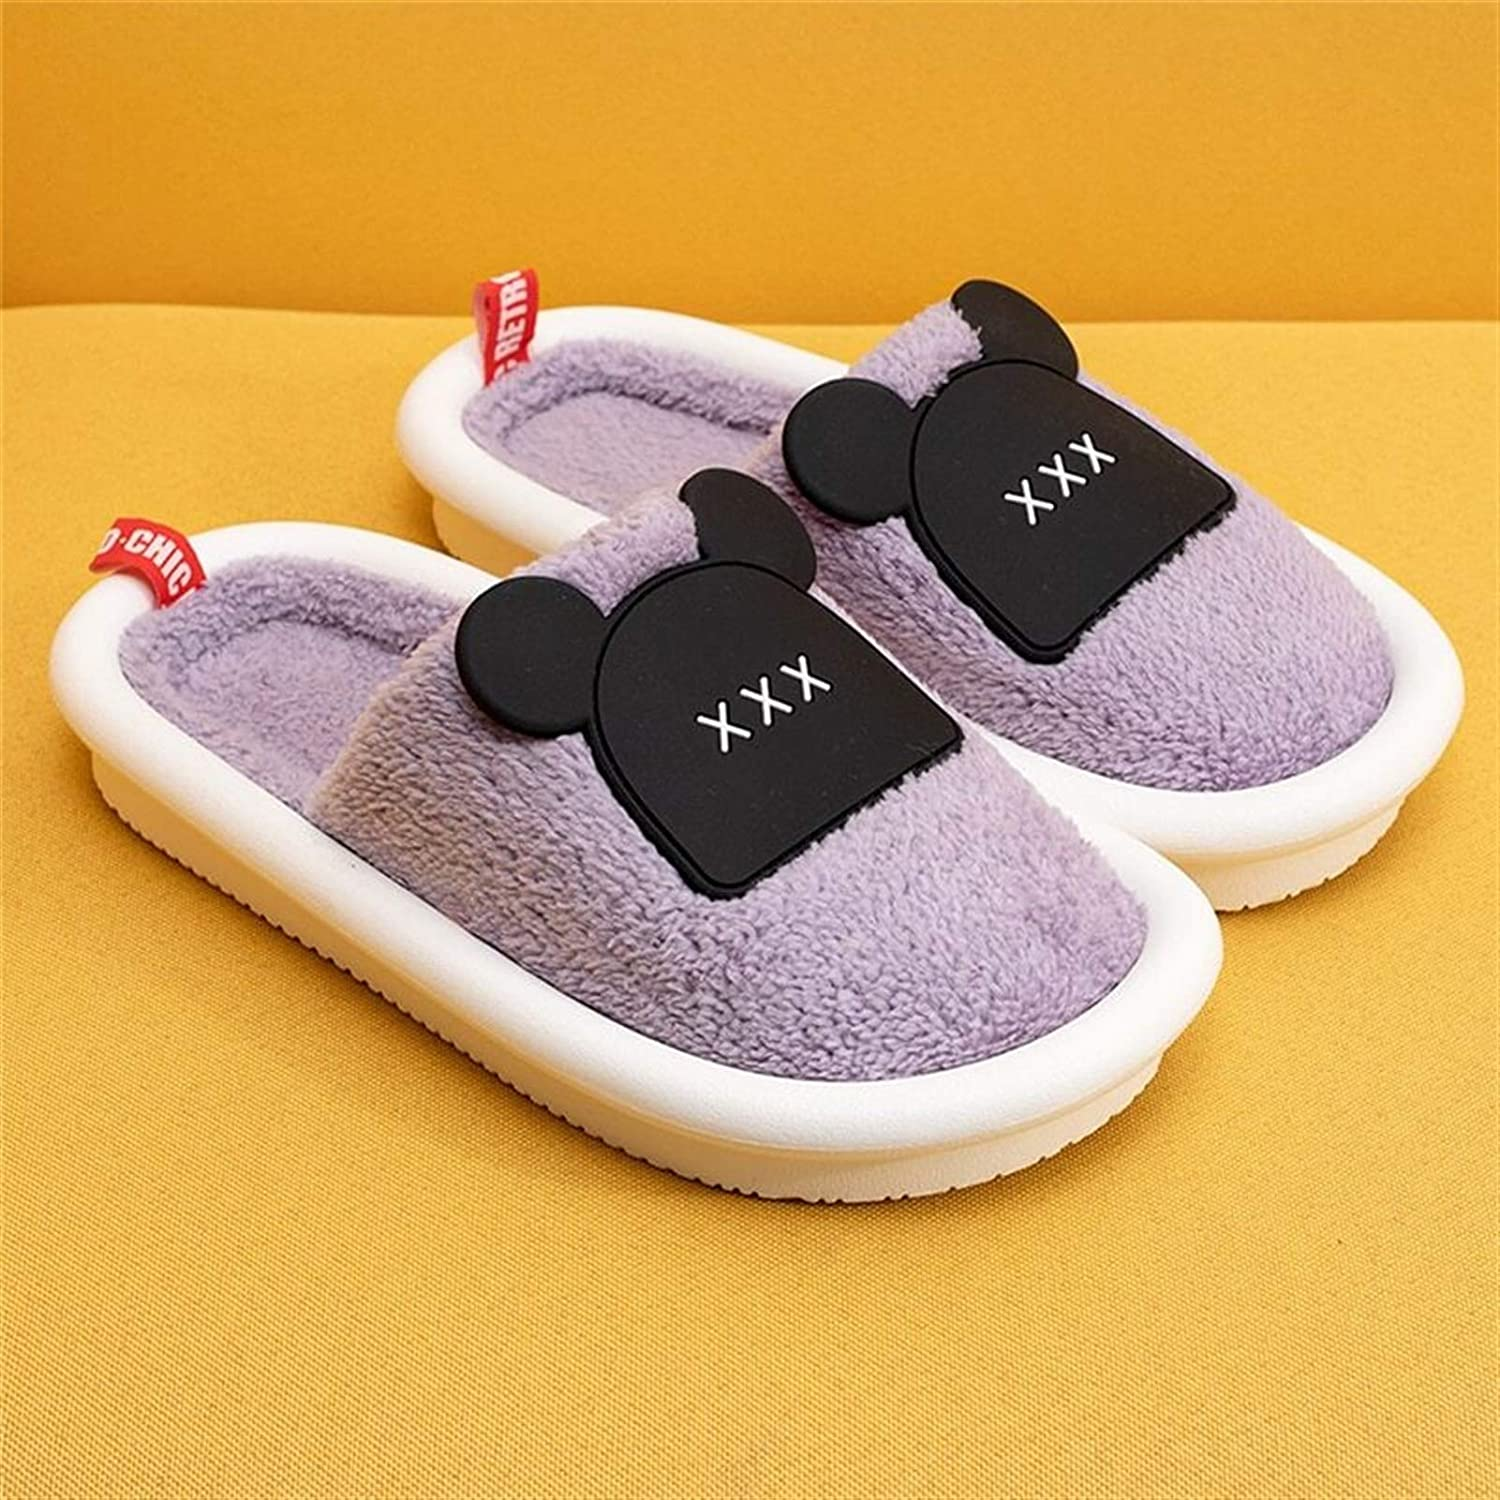 DDPD Open-Toed Fresno Mall Hairy Memory Over item handling ☆ Foam Fashion knitte Slippers Ladies